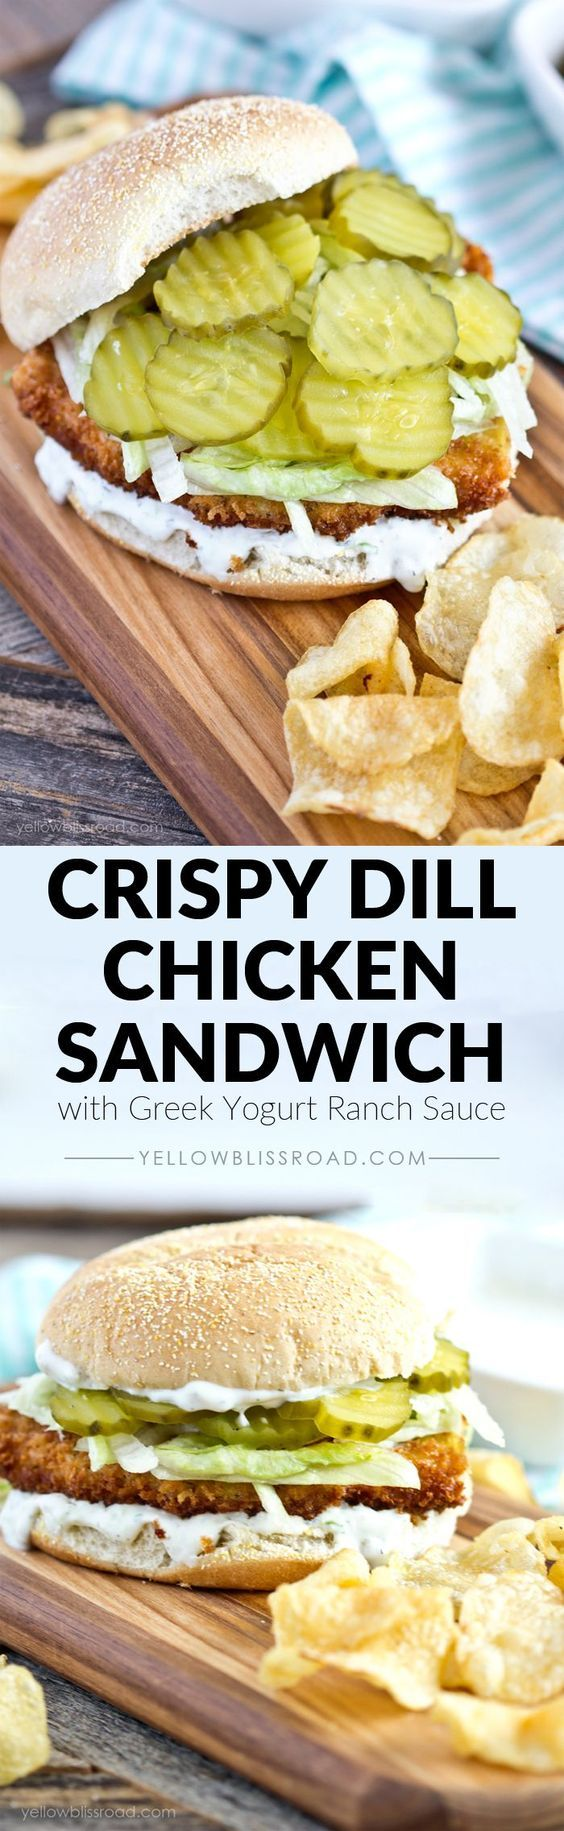 Crispy Dill Chicken Sandwich | Recipe | Dill Chicken, Greek Yogurt ...